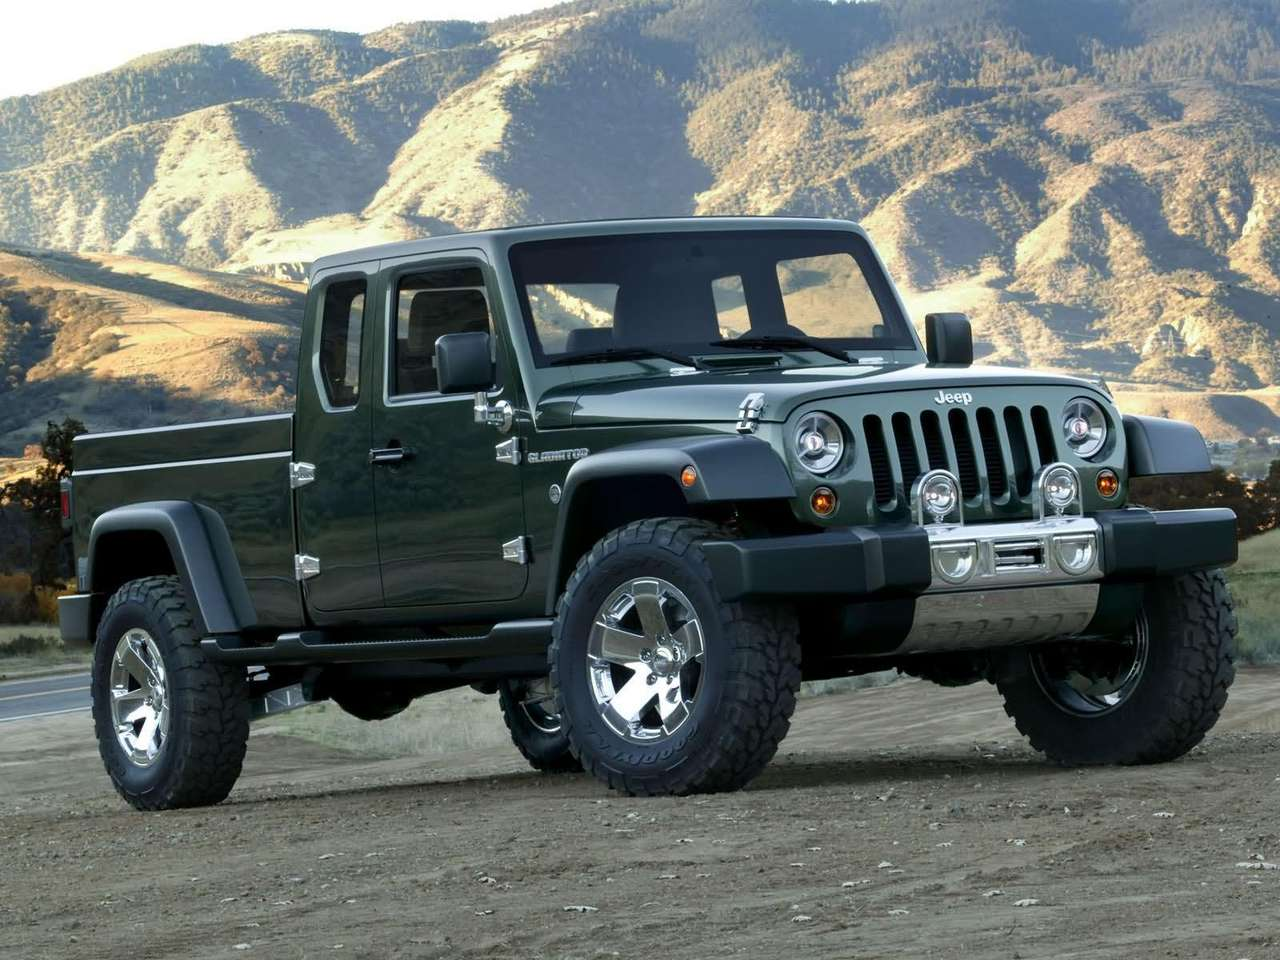 Jeep gladiator photo - 4